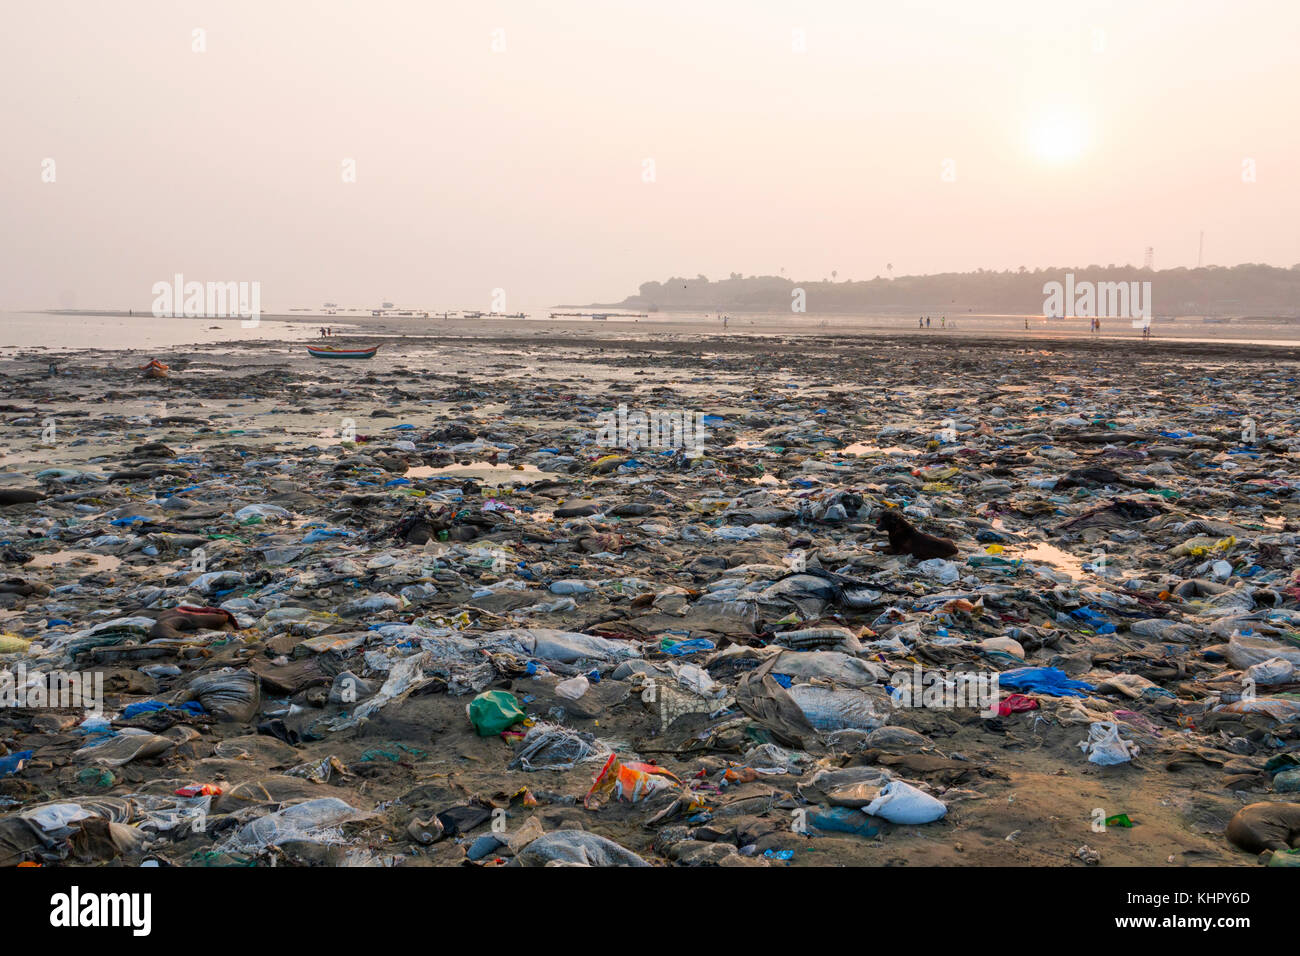 Heavy sewage pollution, plastic garbage and other rubbish at low tide on Versova Beach, Mumbai - Stock Image